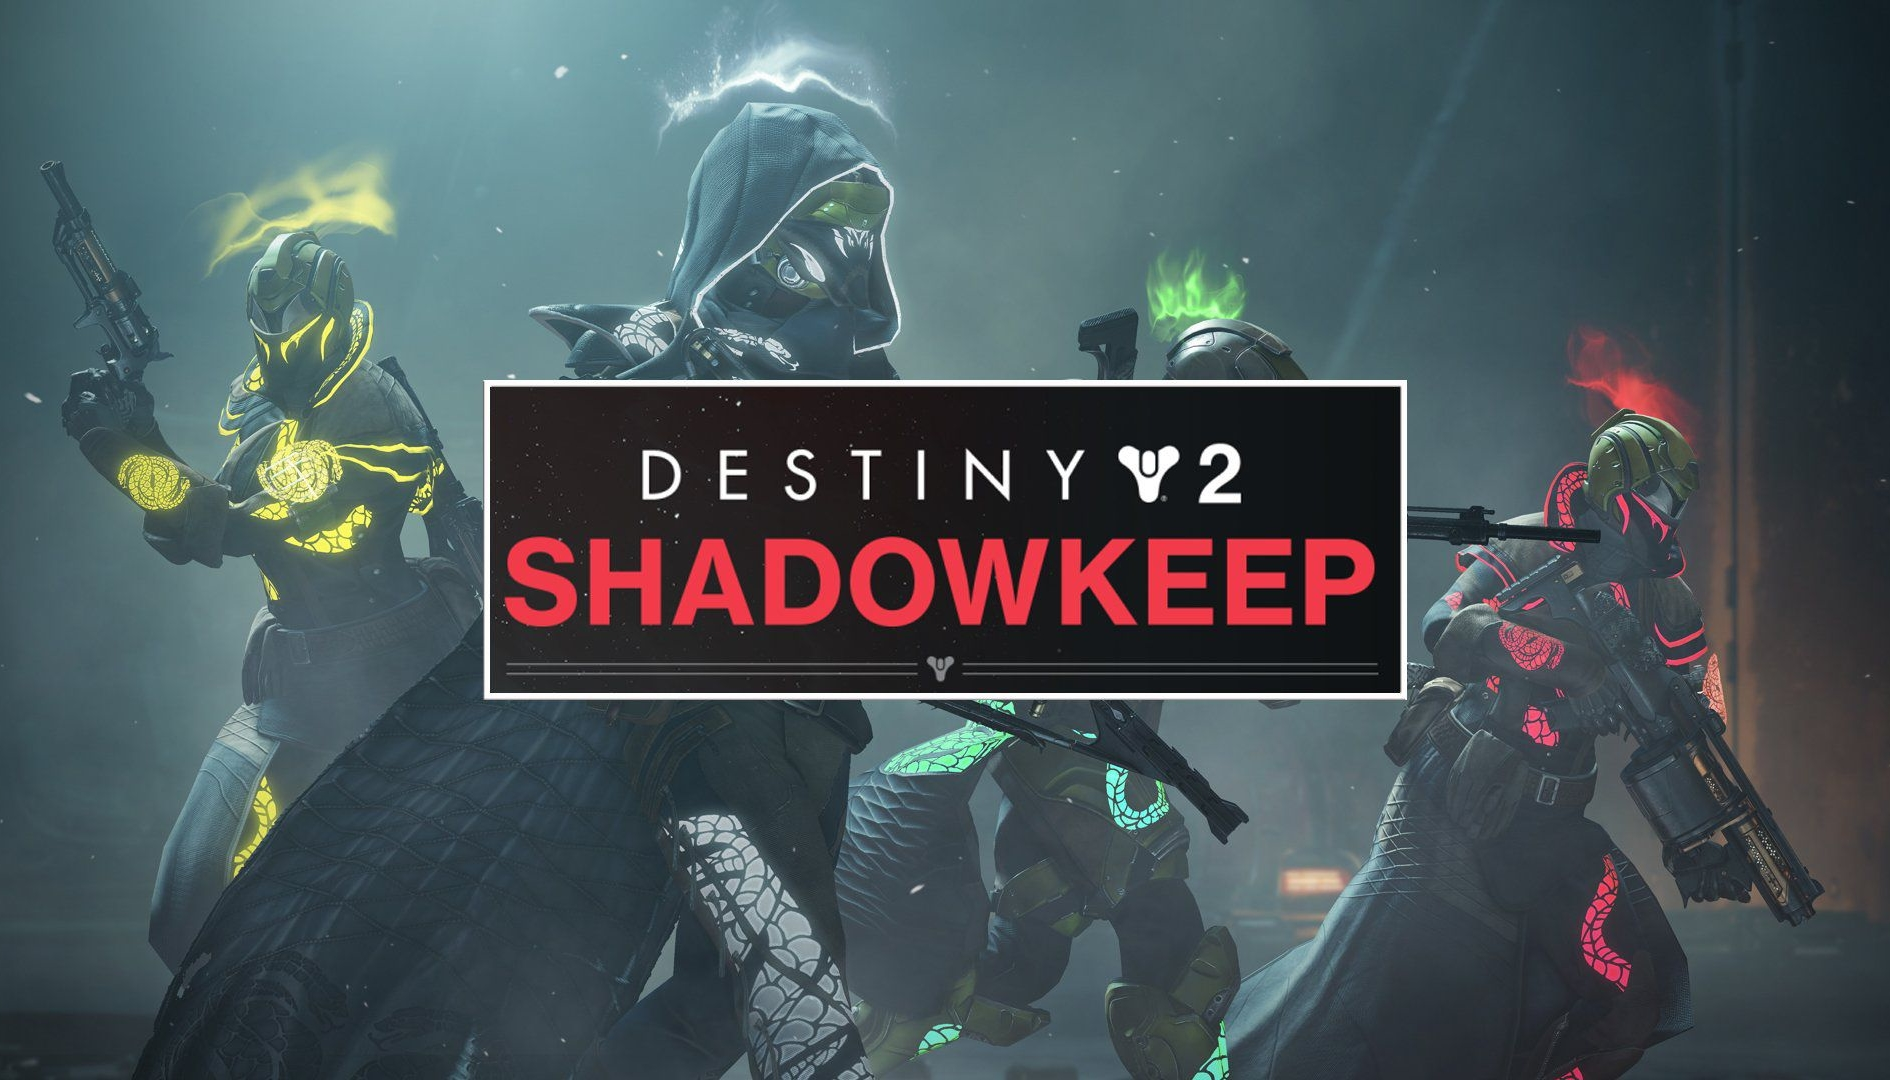 Destiny 2 Shadowkeep: nuovo trailer nasconde un inquietante segreto